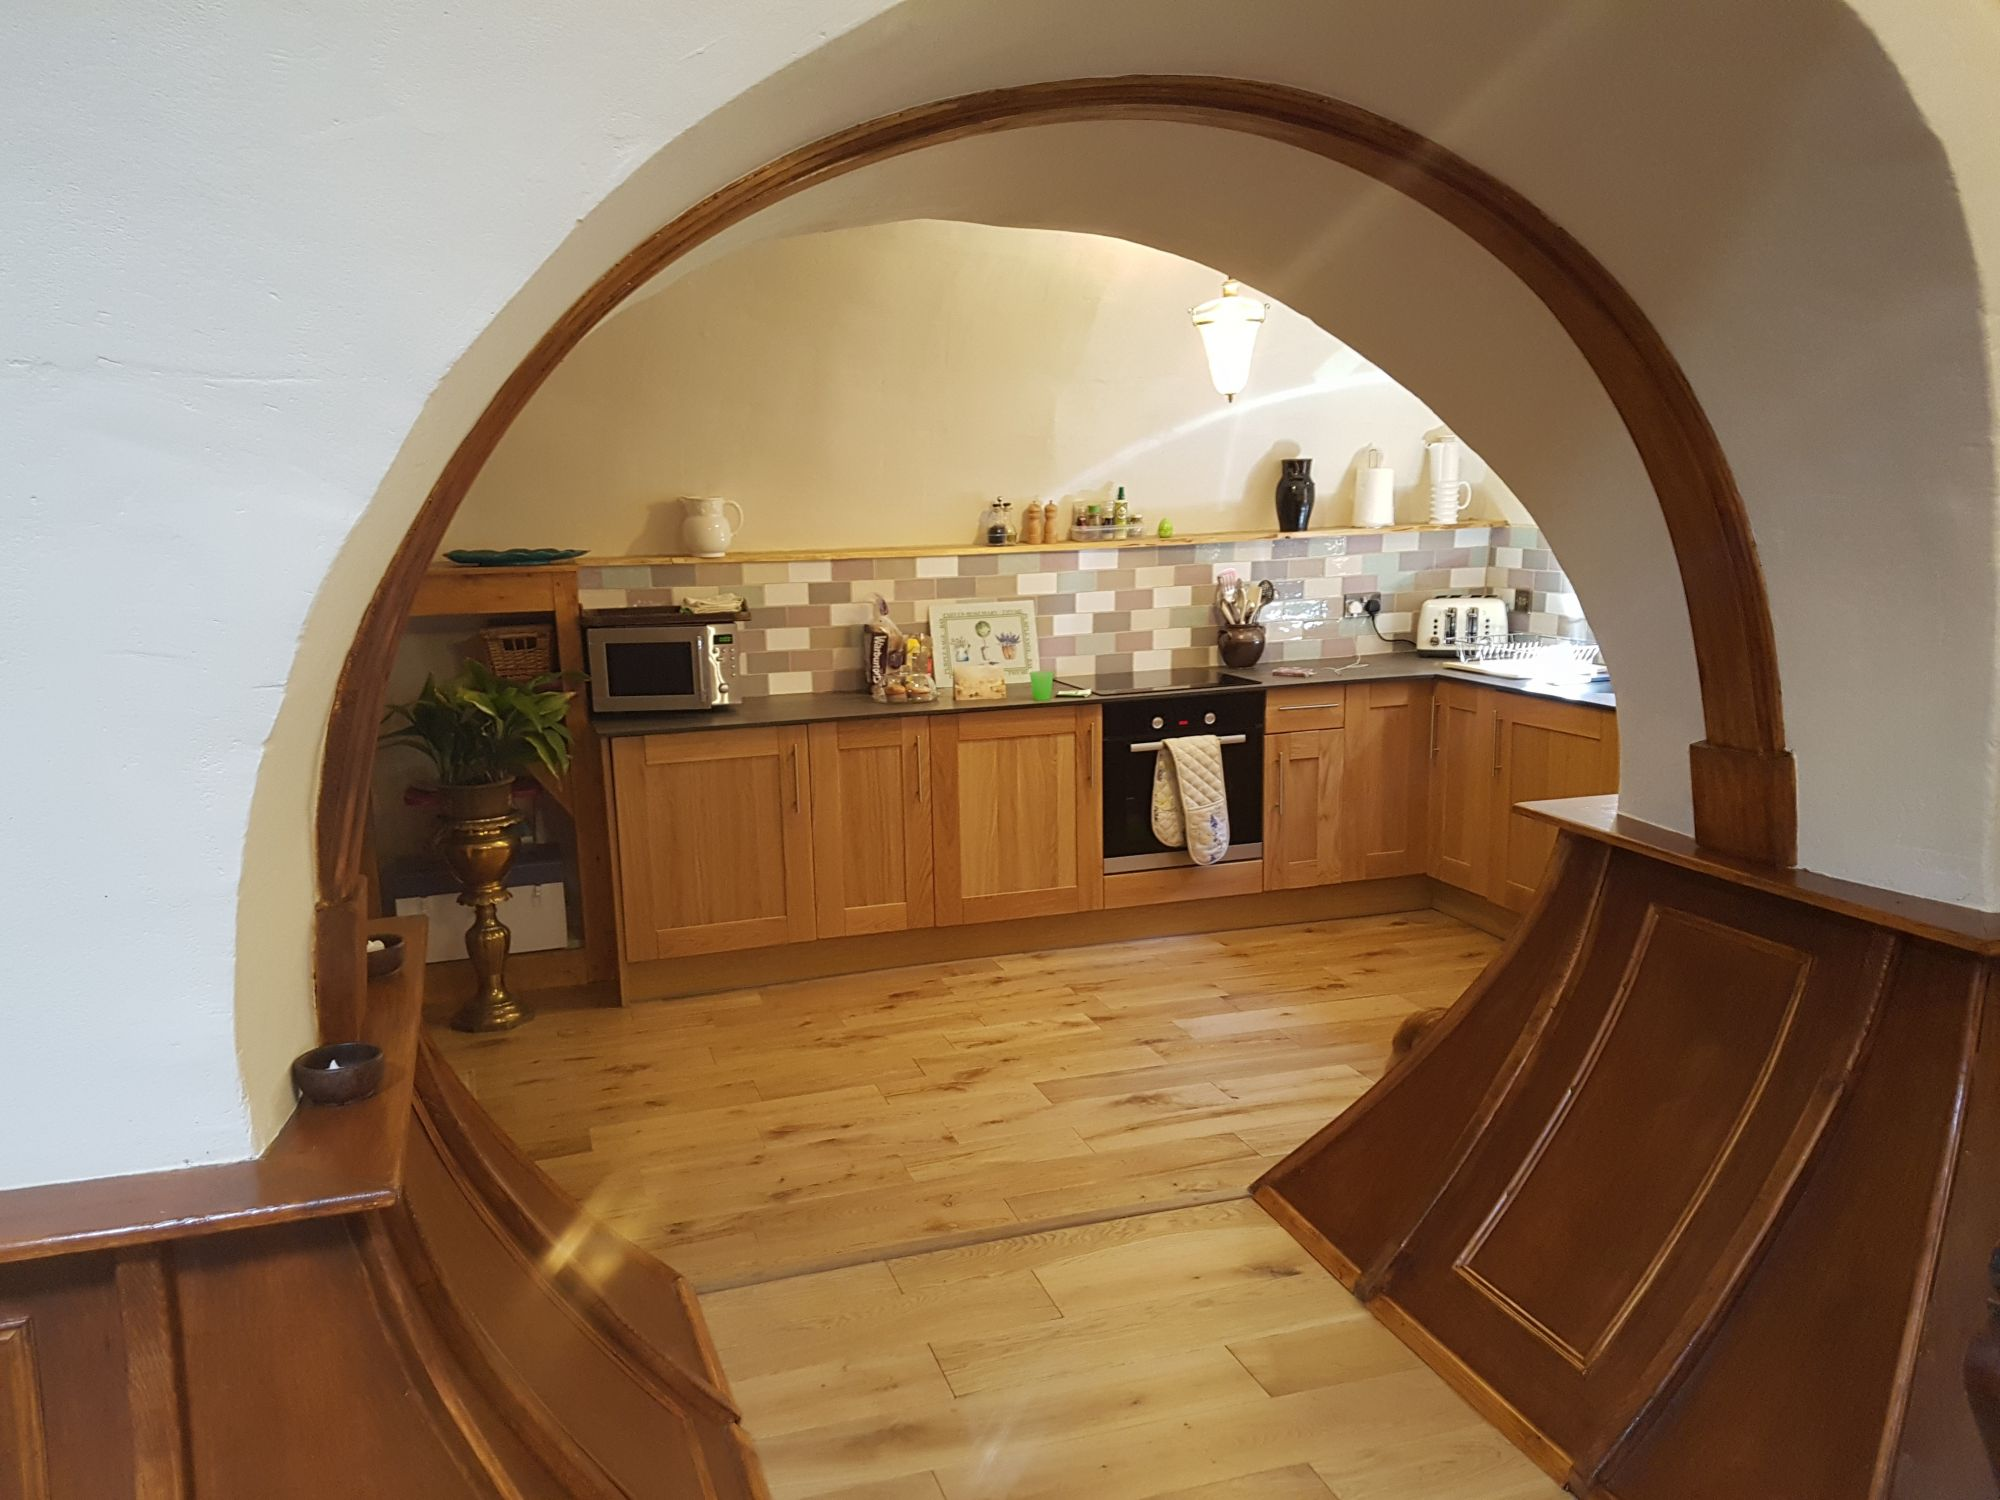 blog-hobbit-kitchen.jpg